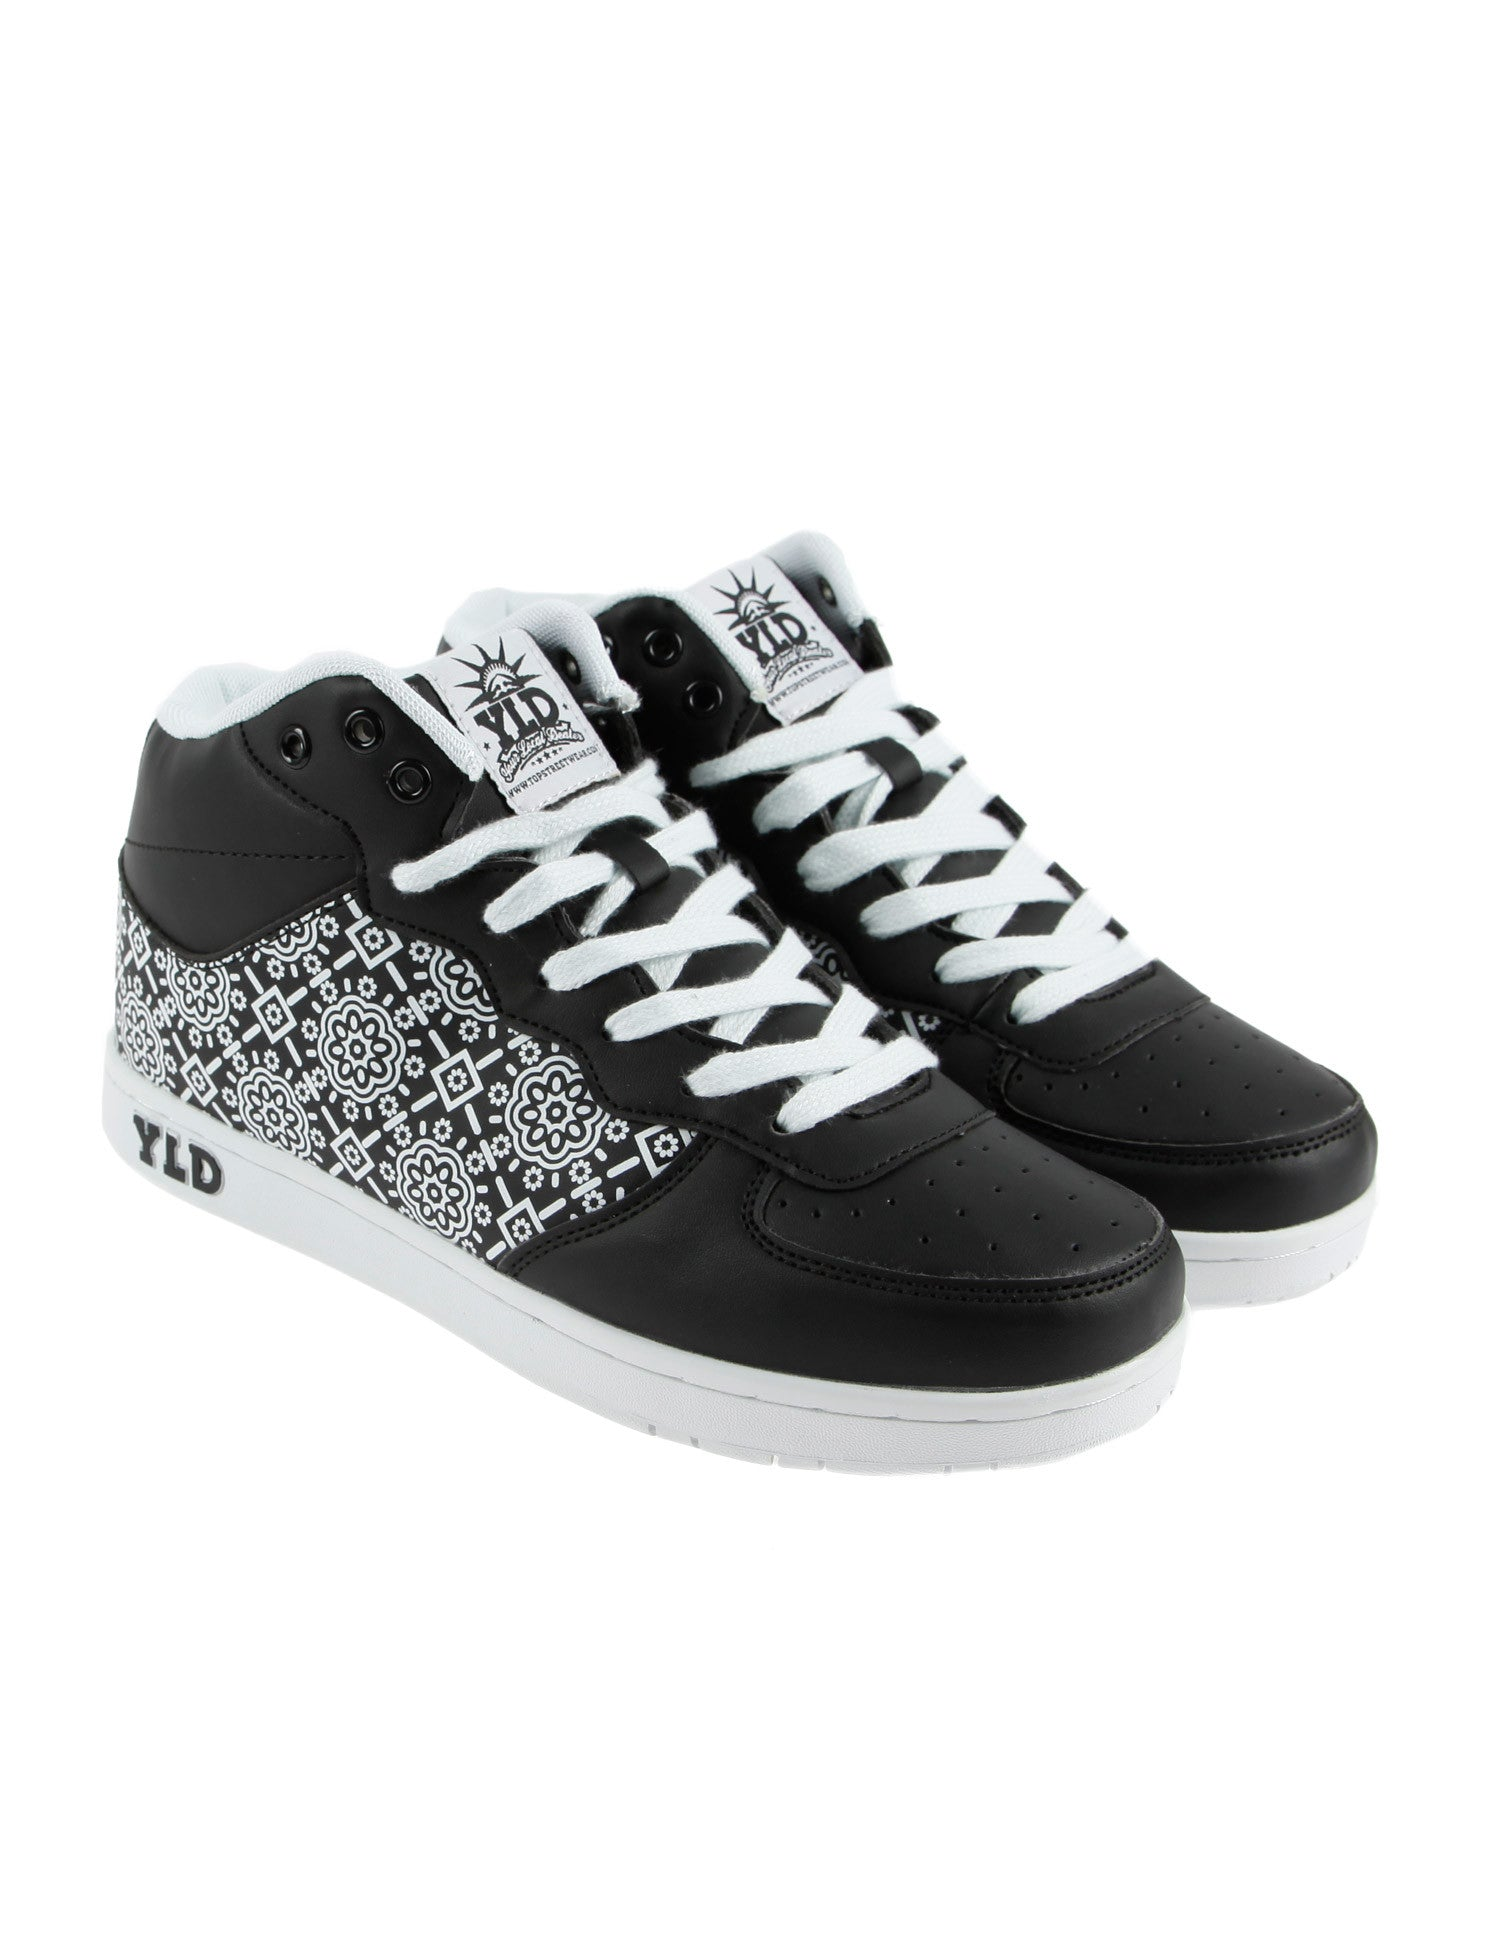 YLD Shoes G507C Black